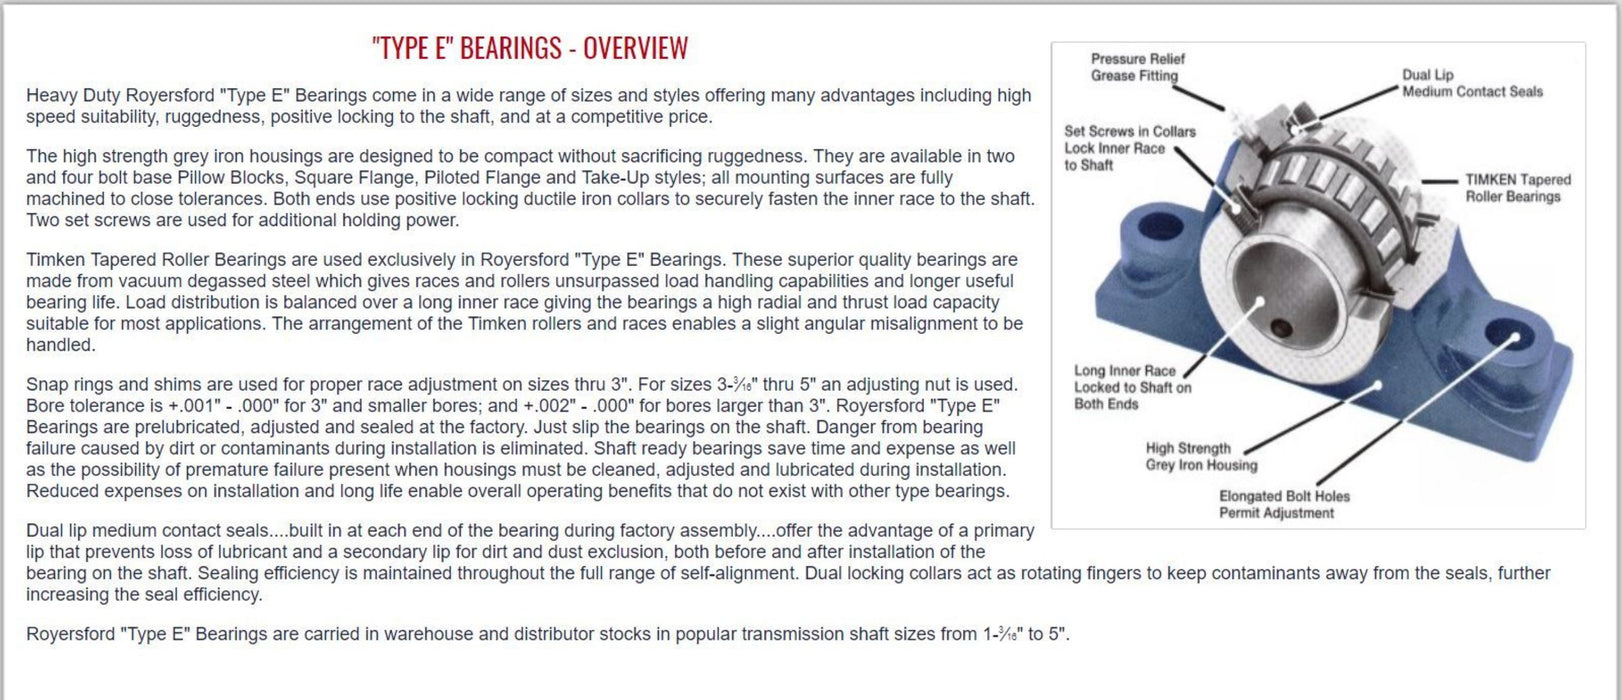 20-04-0400, ROYERSFORD TYPE E 4-Bolt Pillow Block Bearing, 4 with Timken Tapered Roller Bearings